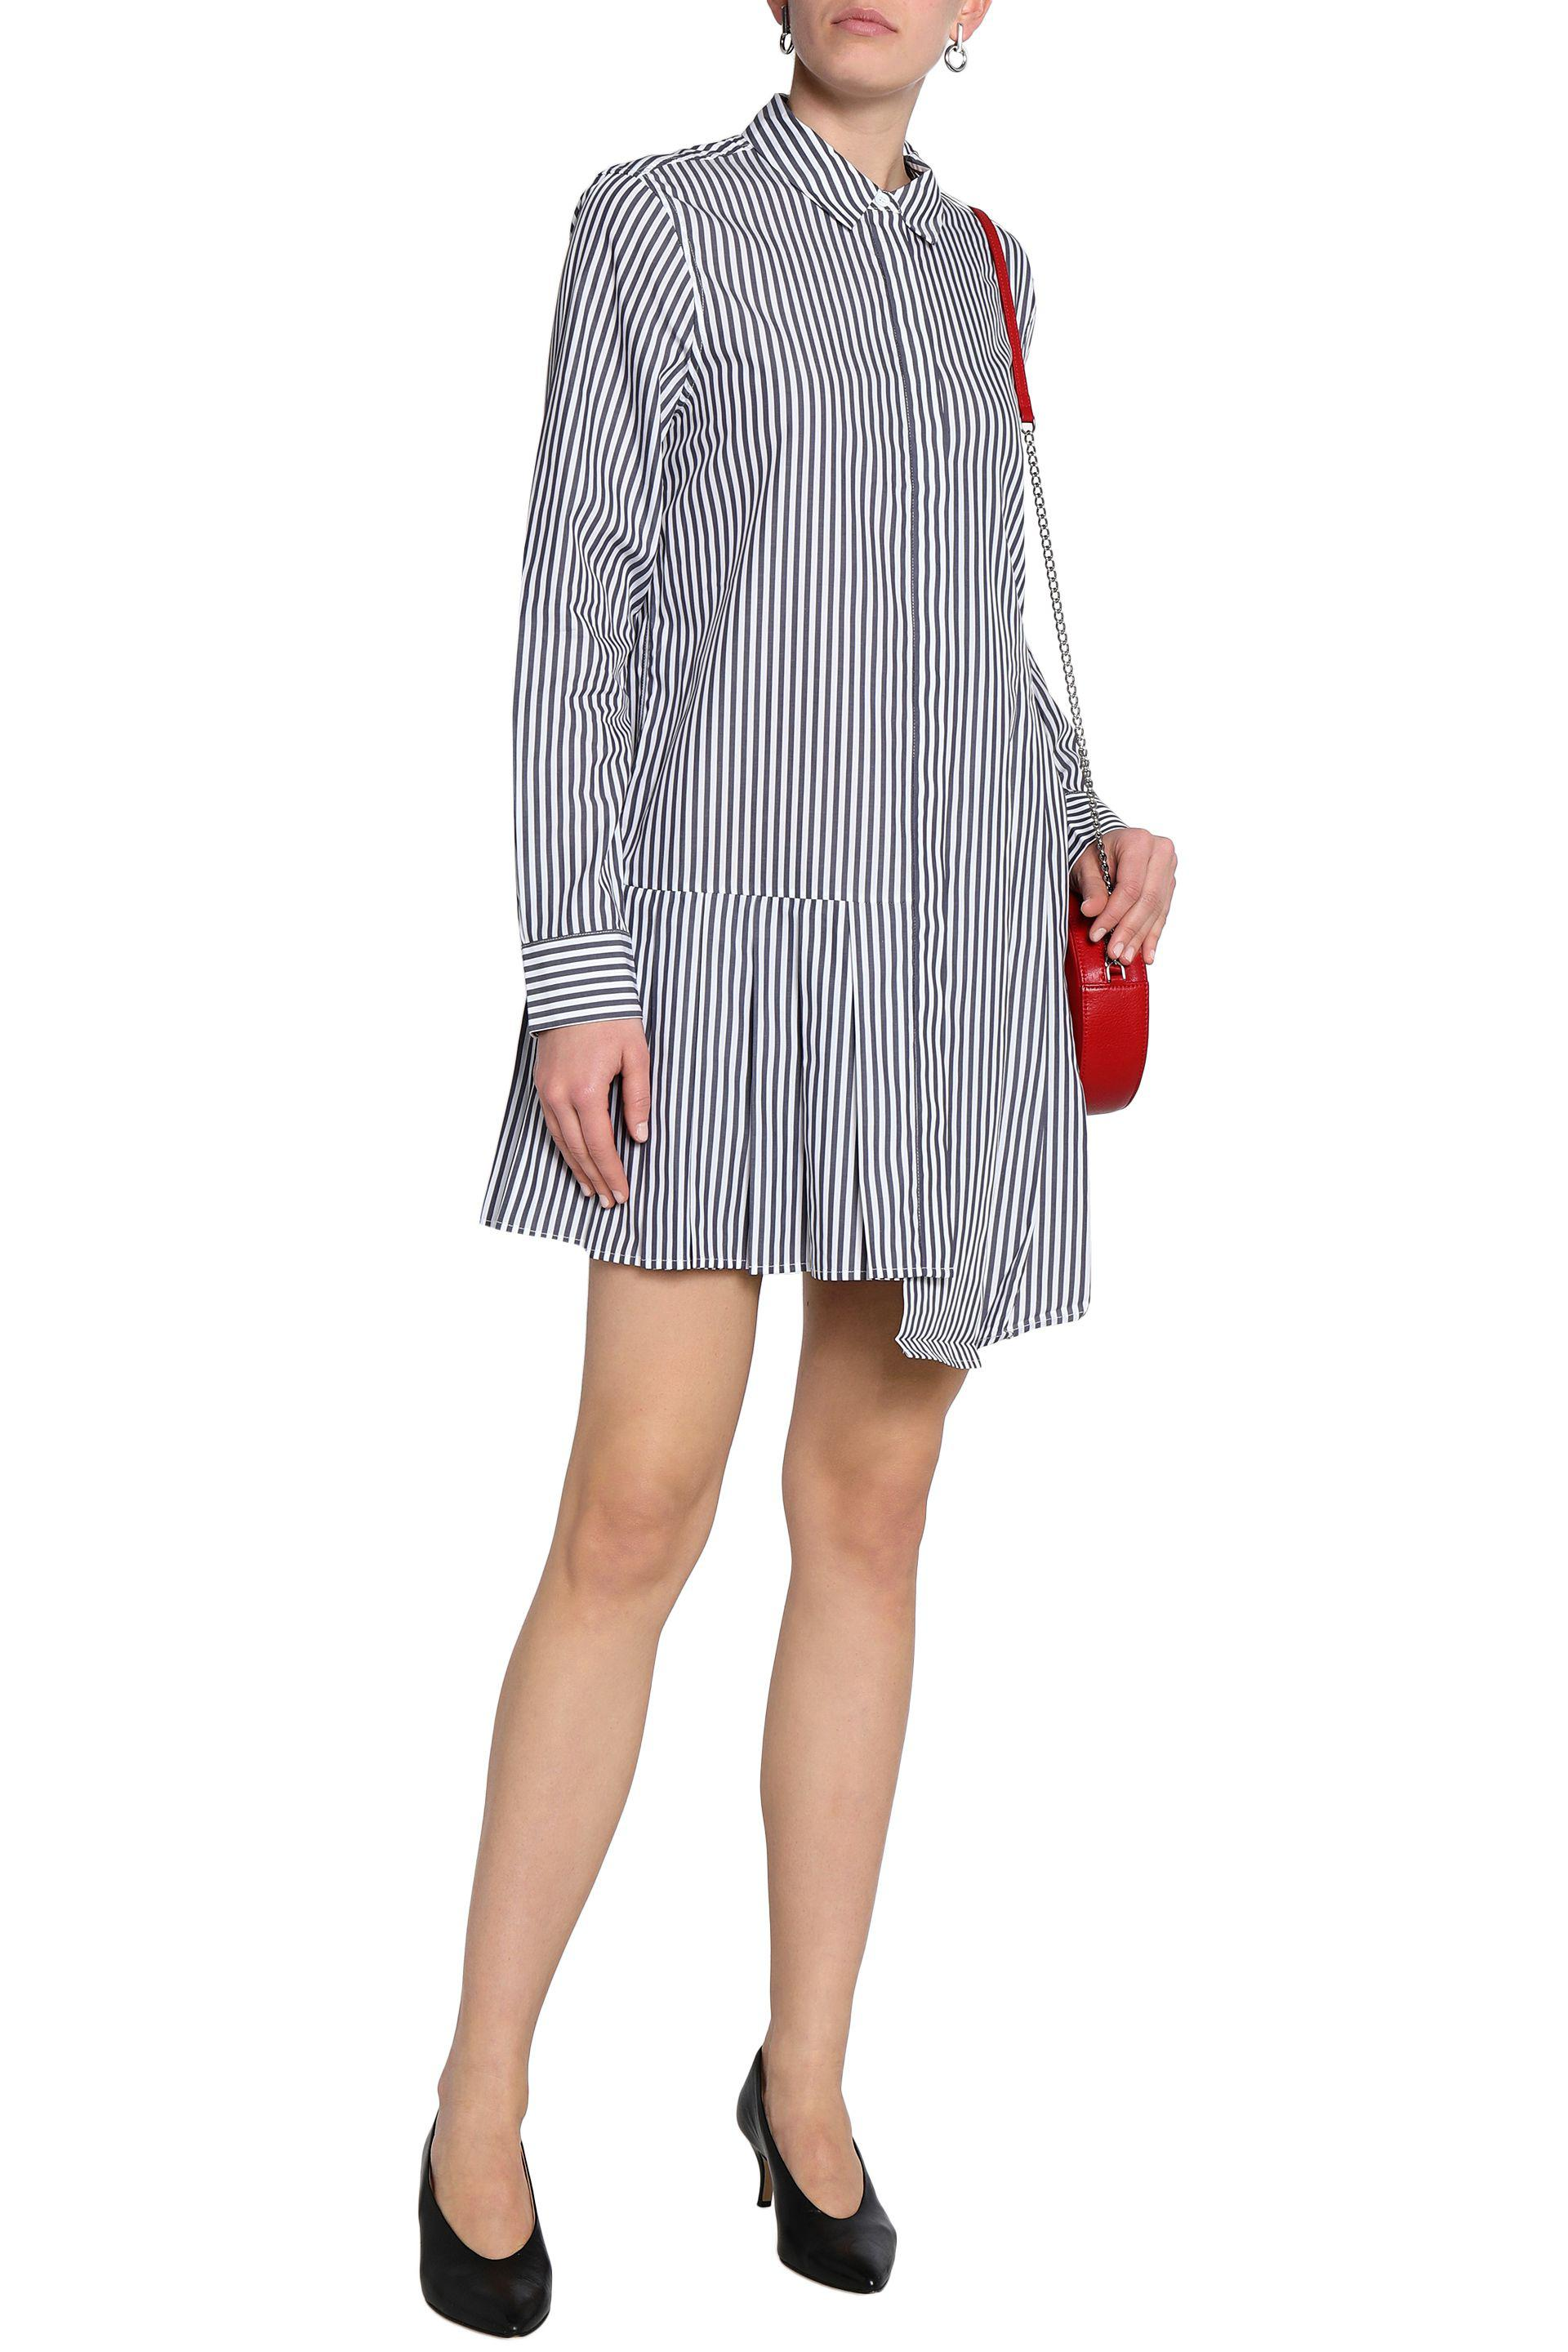 Equipment Woman Asymmetric Striped Cotton-poplin Mini Shirt Dress Multicolor Size L Equipment eSPDp4QCTU